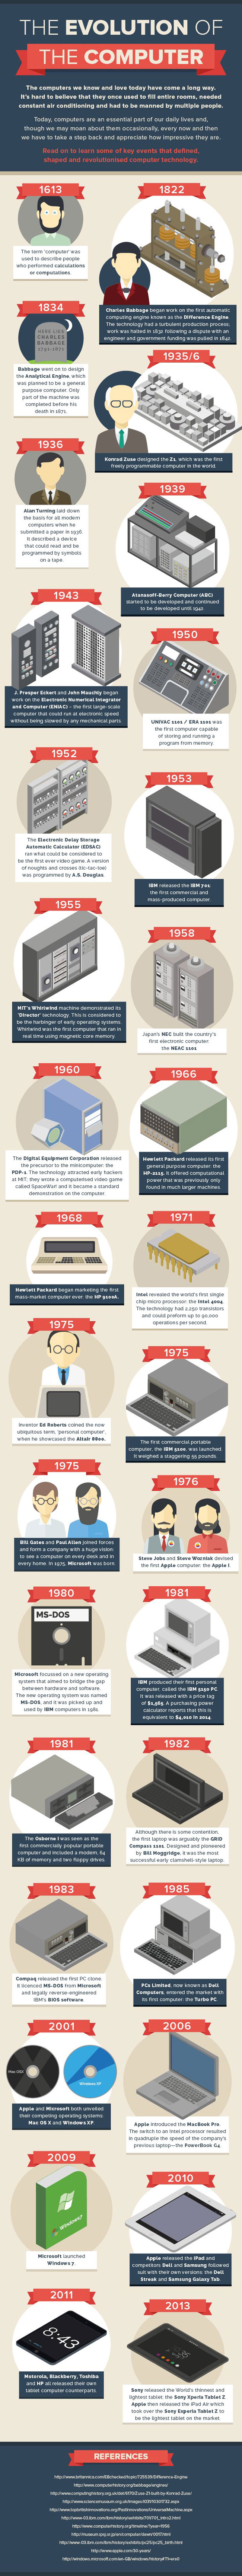 the_evolution_of_computer_infographic